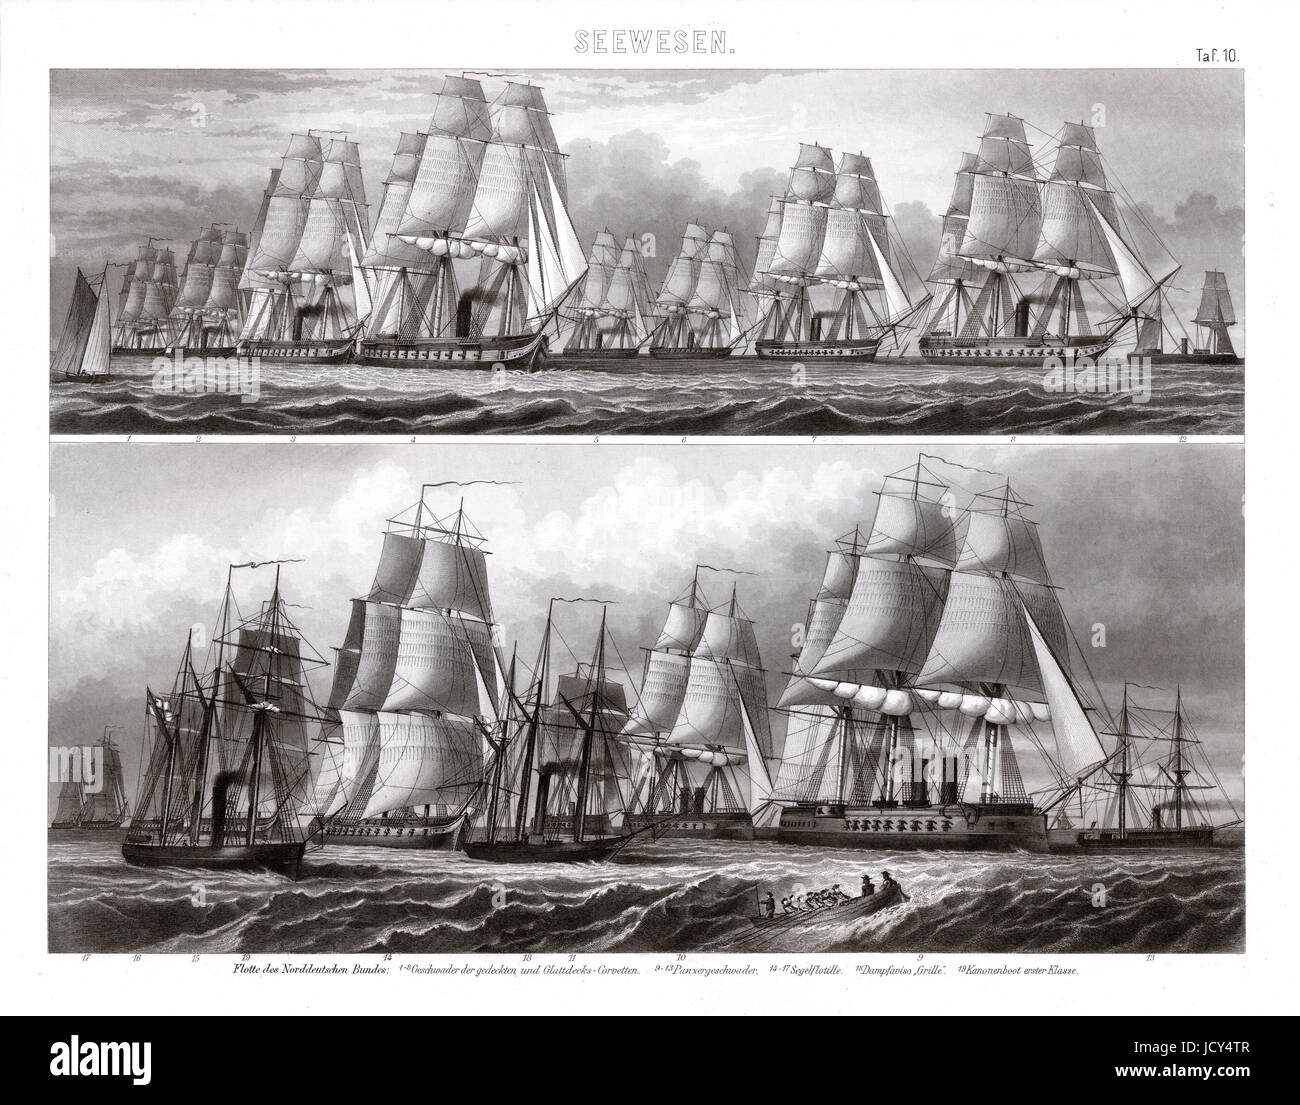 Flotilla of German Warships utilizing hybrid technology of steam power and sails. - Stock Image